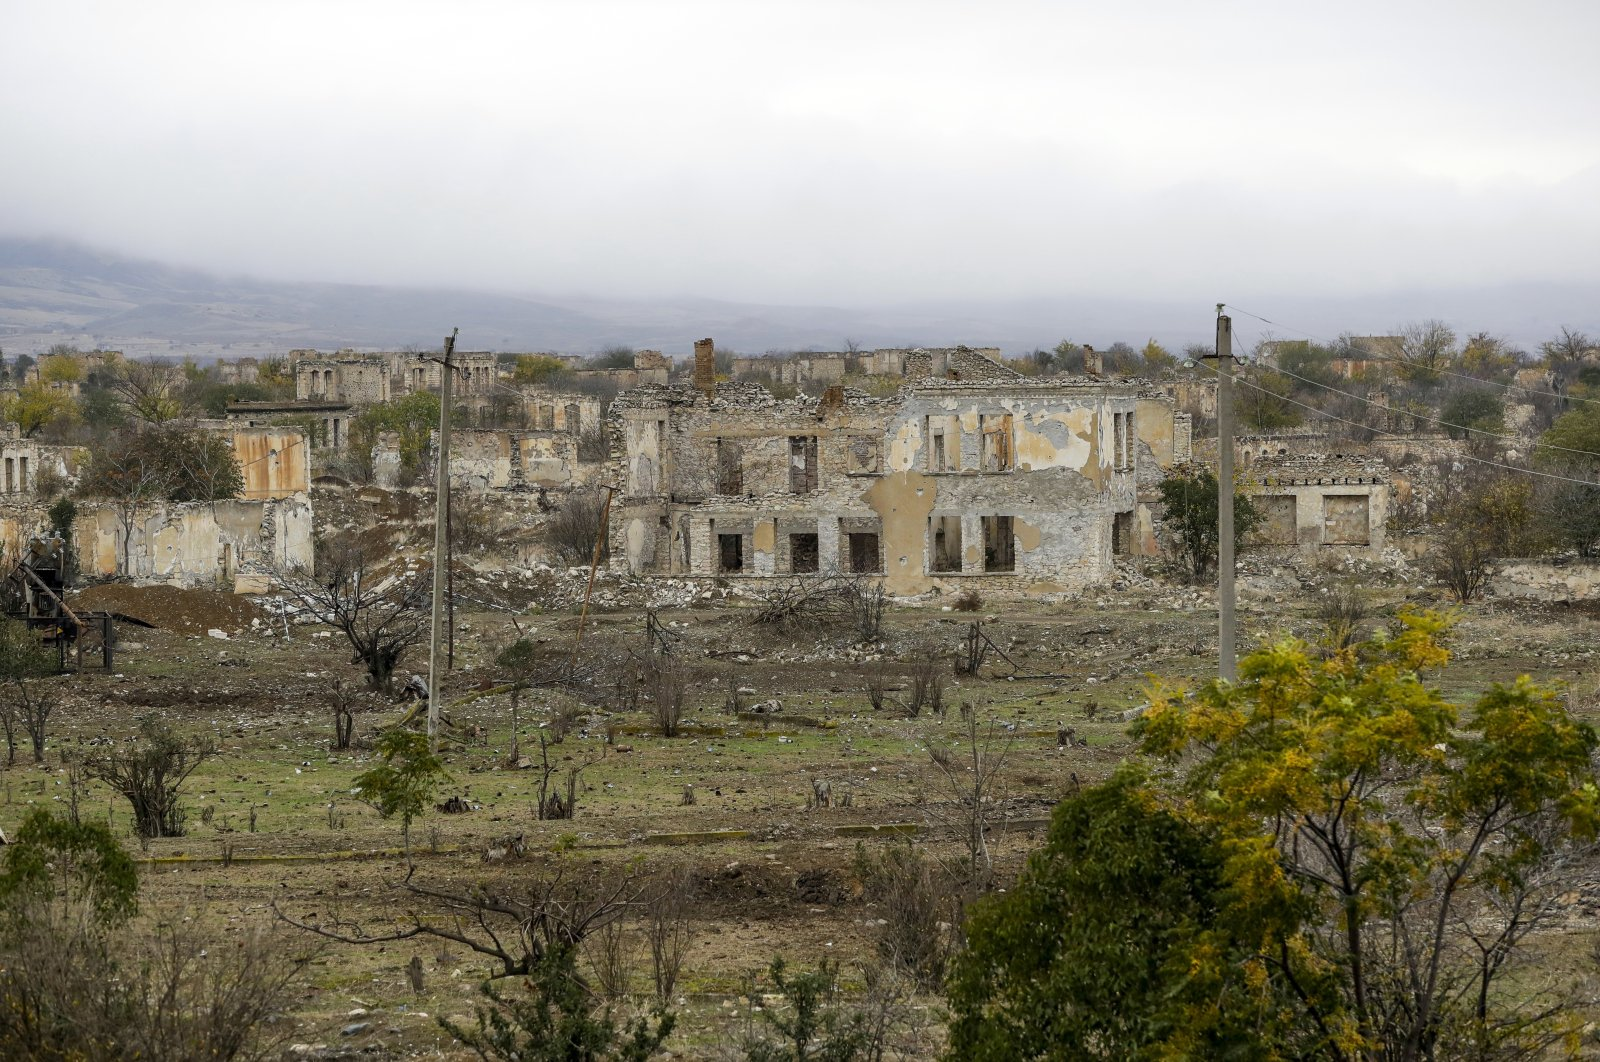 A view of a vast expanse of jagged concrete and houses are seen in Aghdam, once a lively town of around 50,000 inhabitants, Azerbaijan, Nov. 19, 2020. (AP Photo)